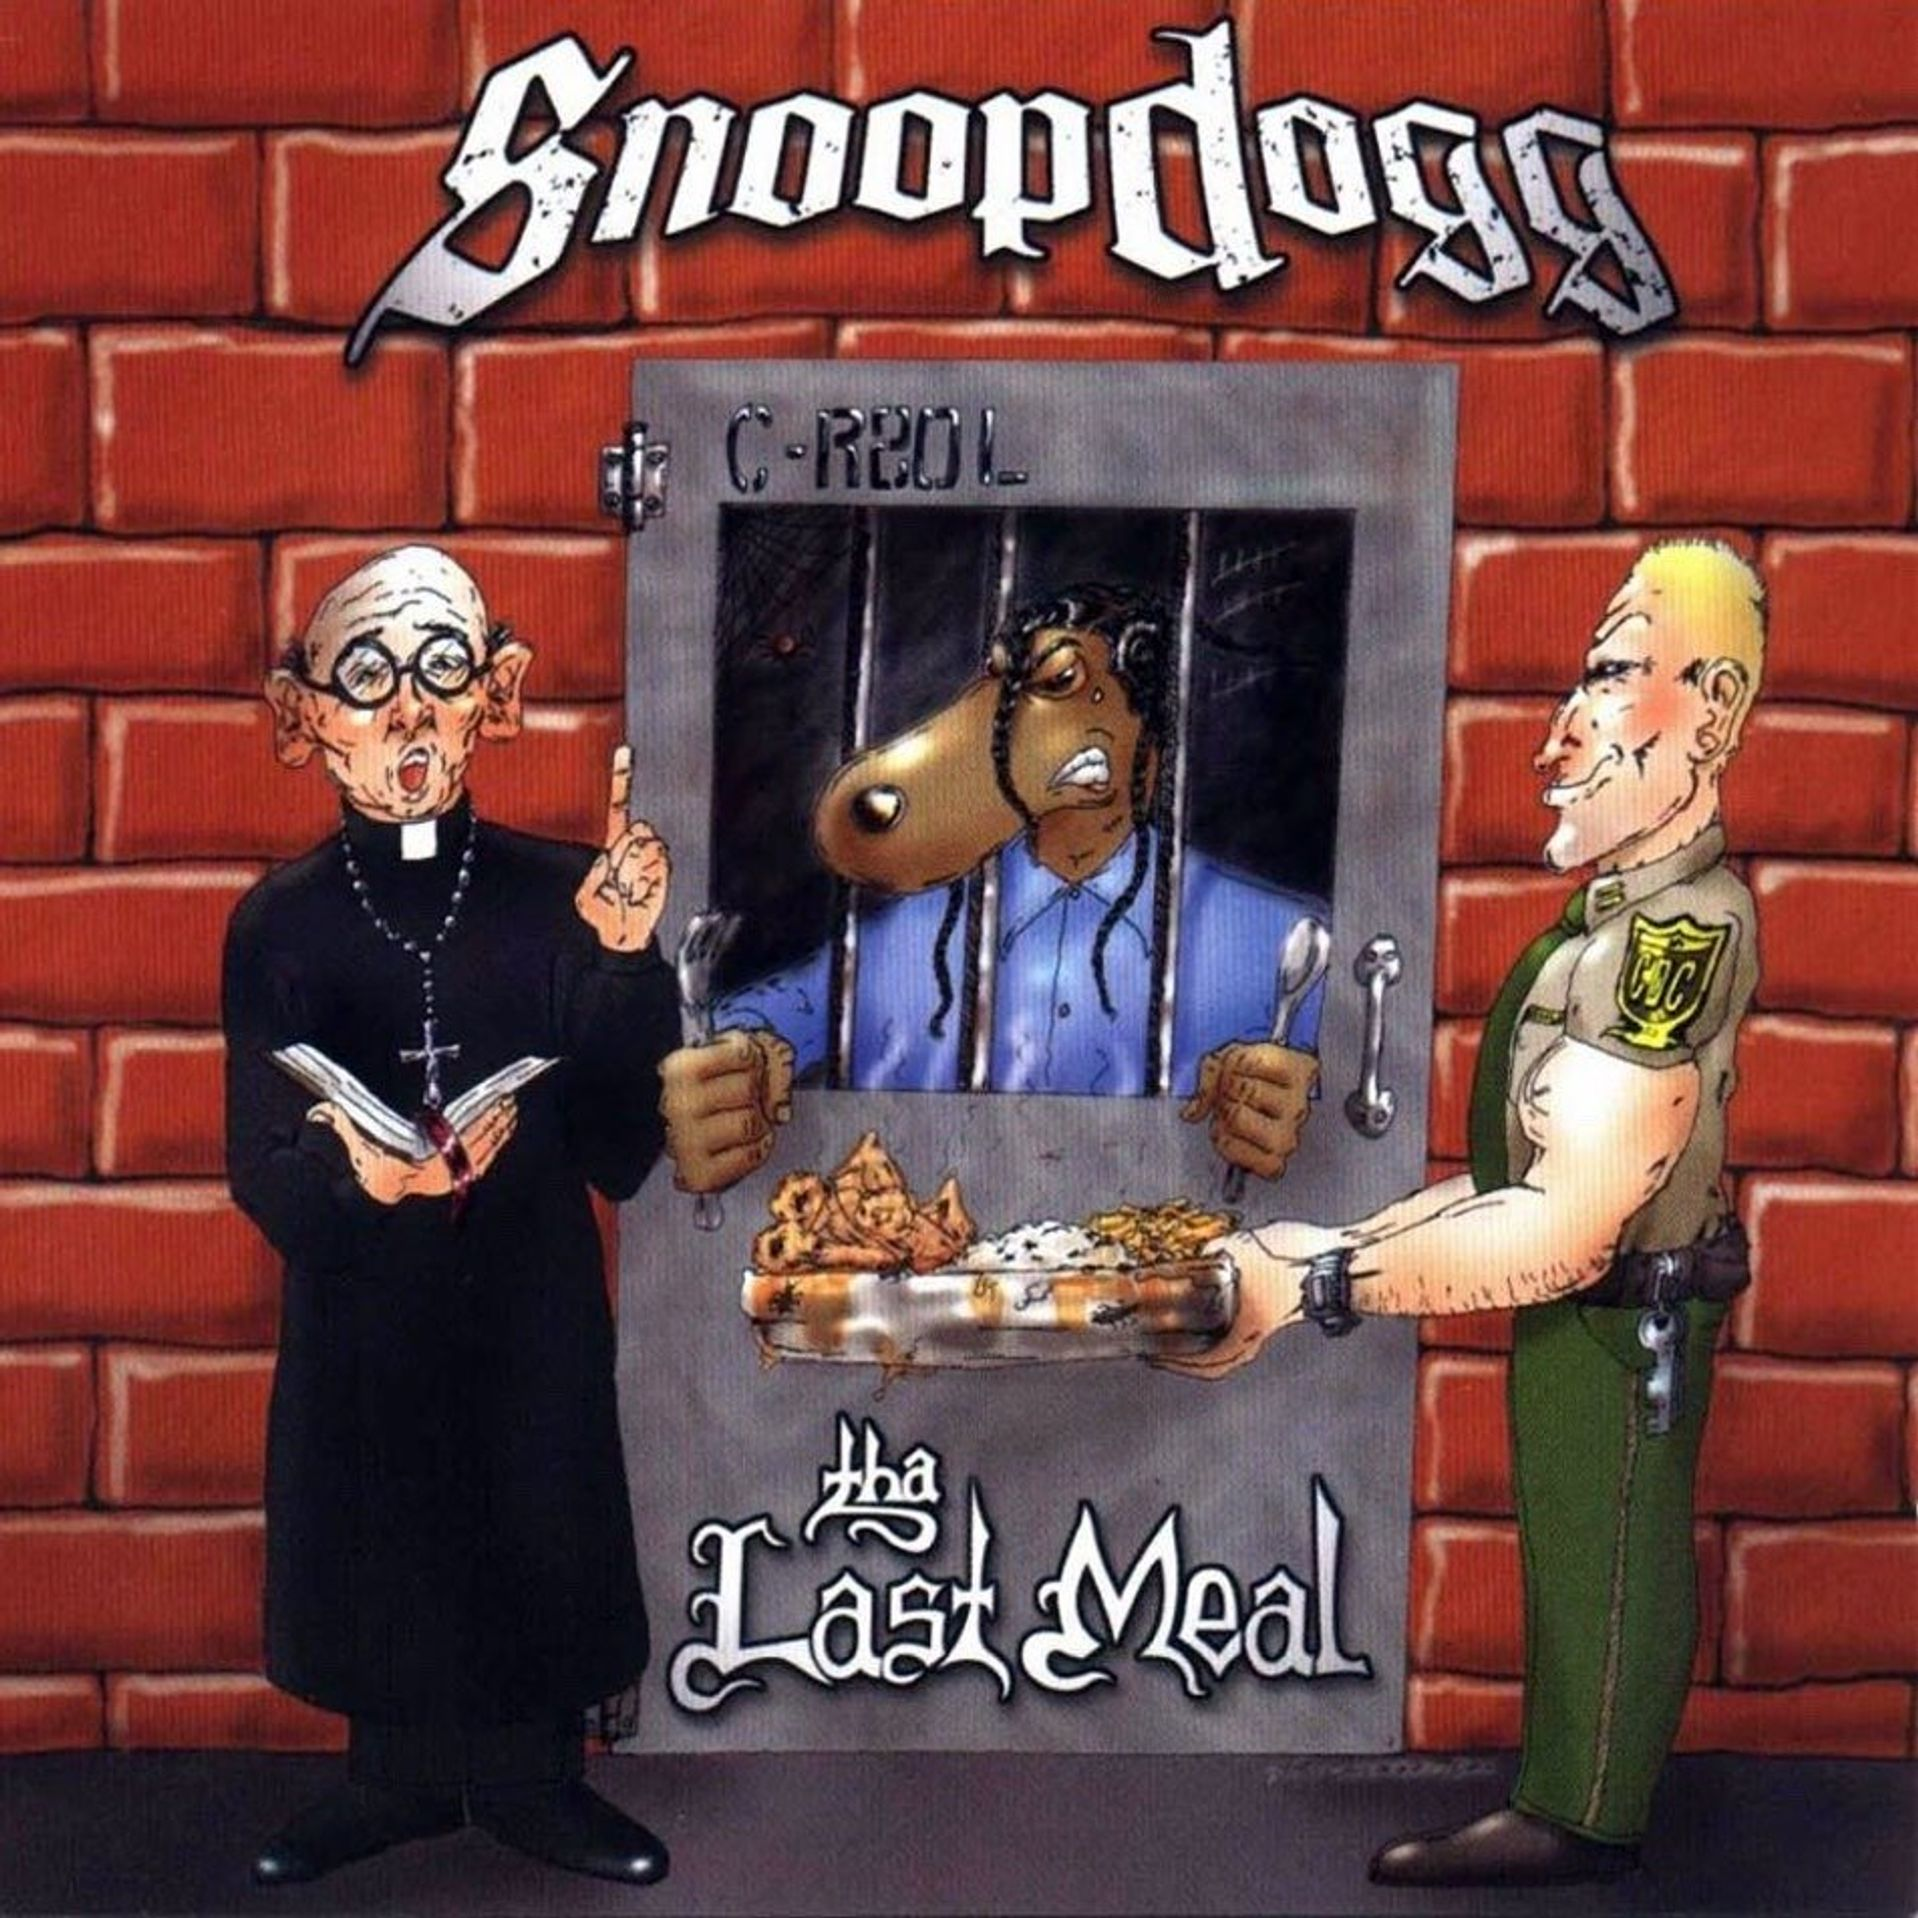 Album Title: Tha Last Meal by: Snoop Dogg